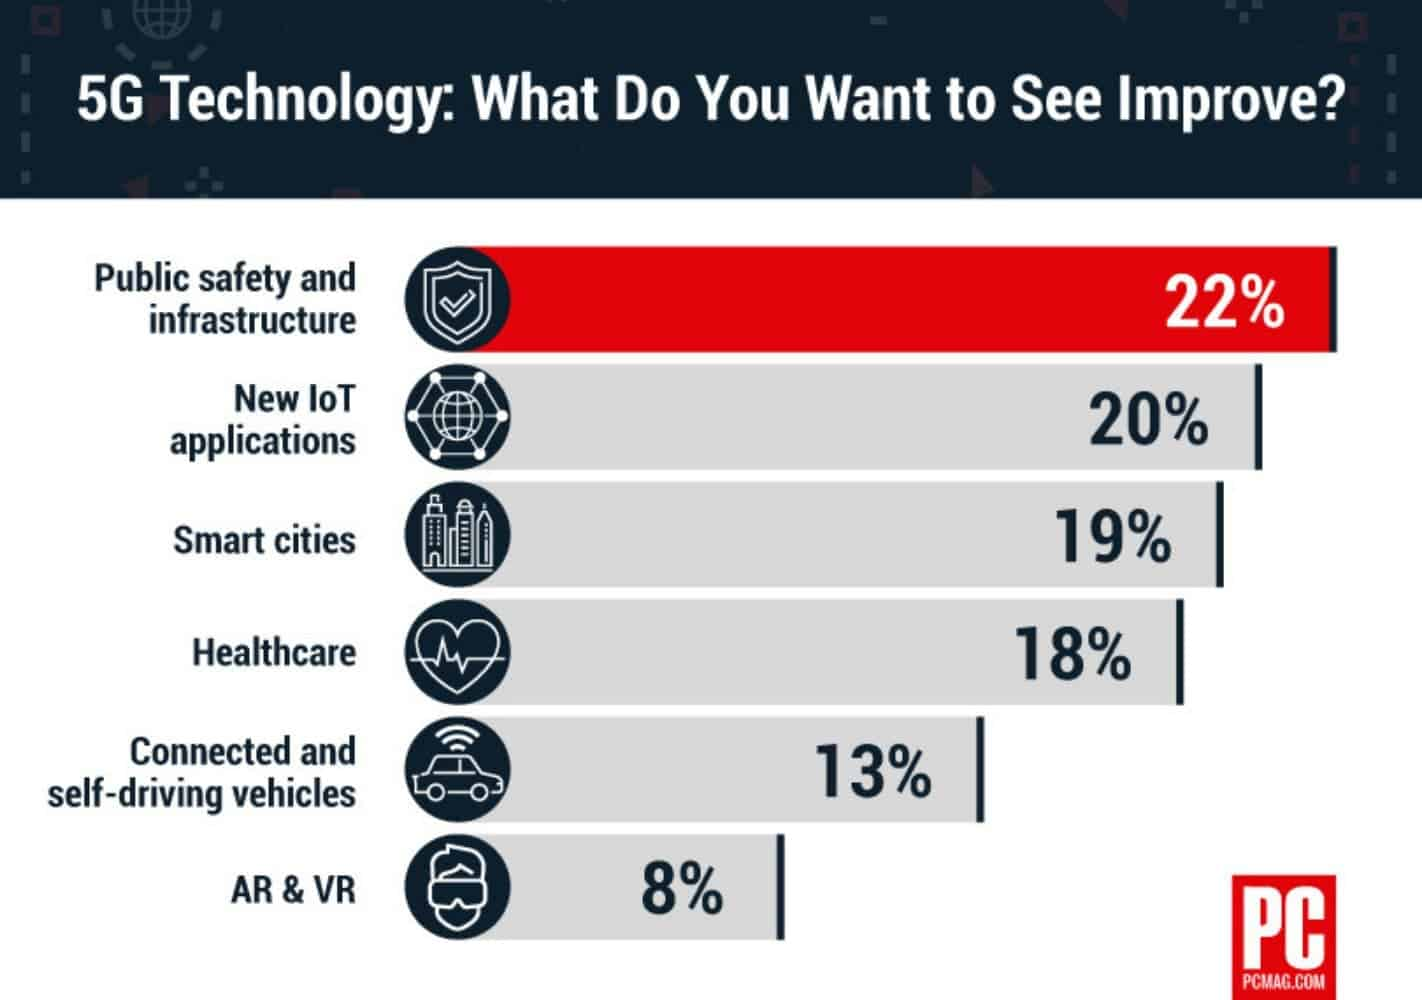 640697 the why axis 5g improvement survey from PCMag